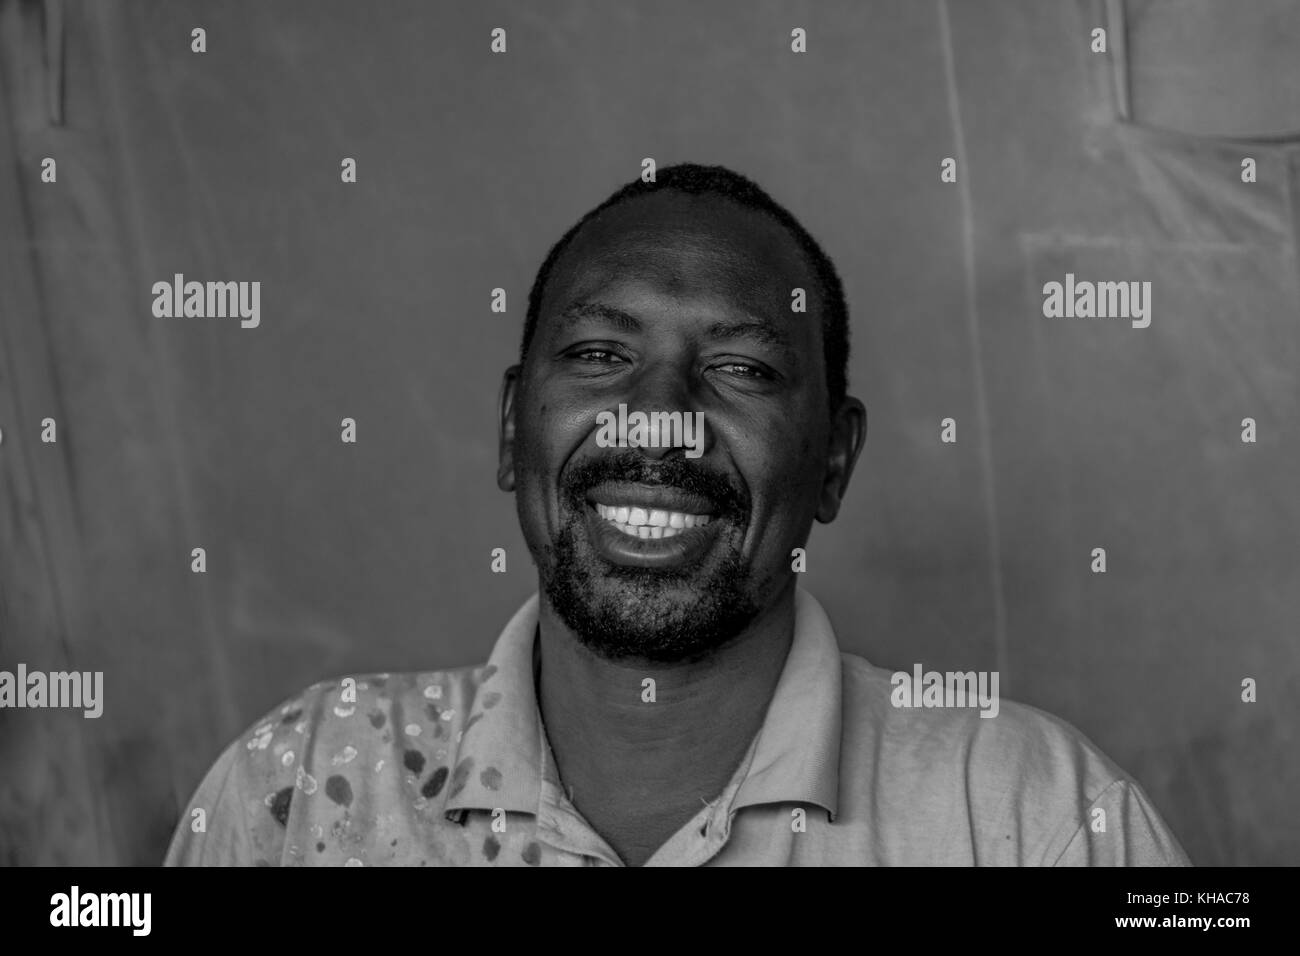 A portrait shot of a African man laughing in Mali. - Stock Image